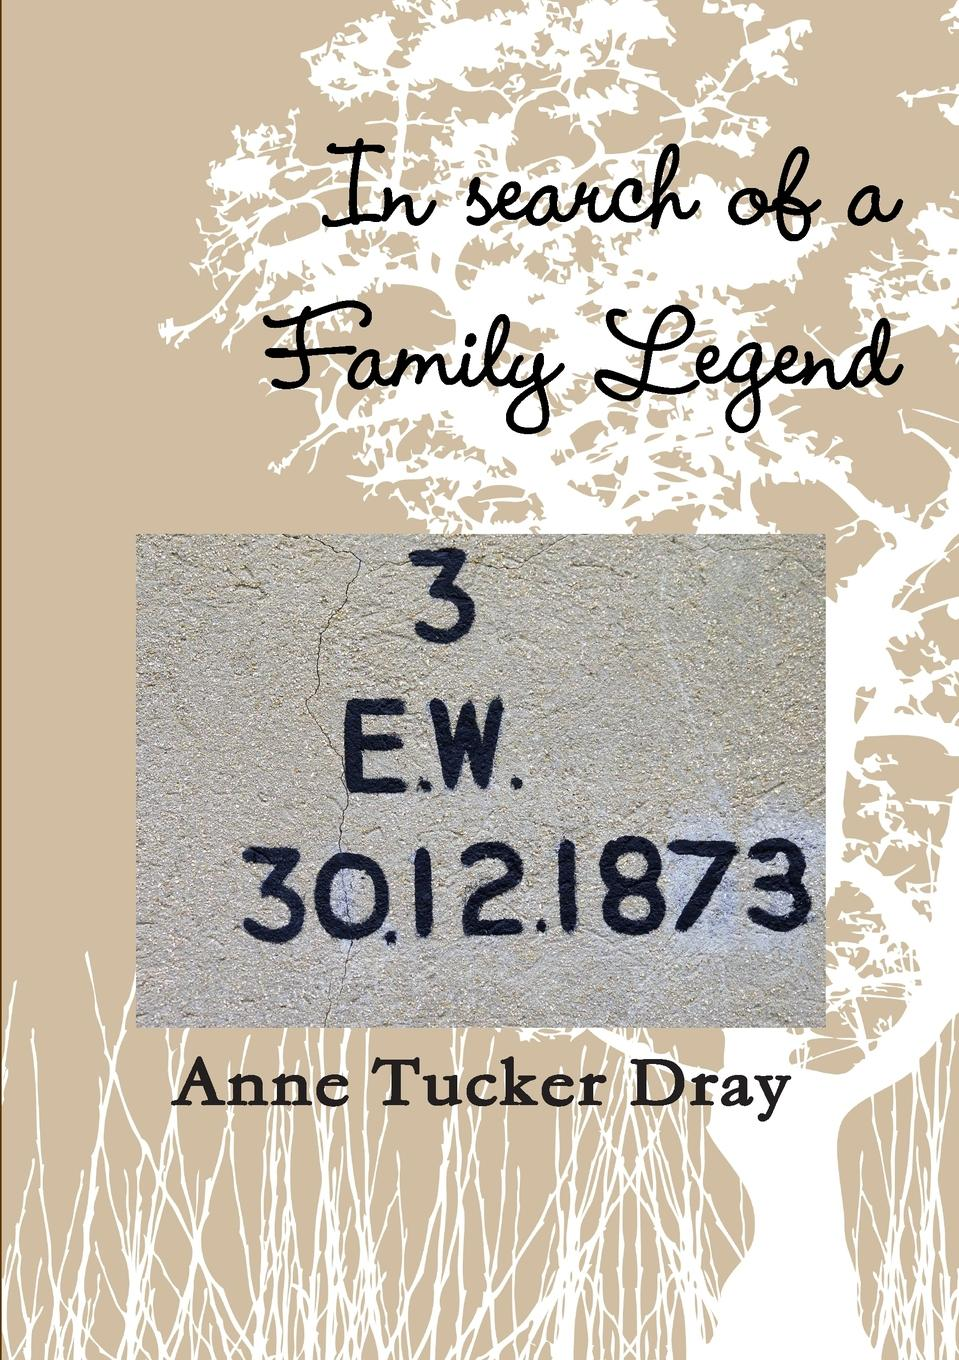 Anne Tucker Dray In search of a family legend